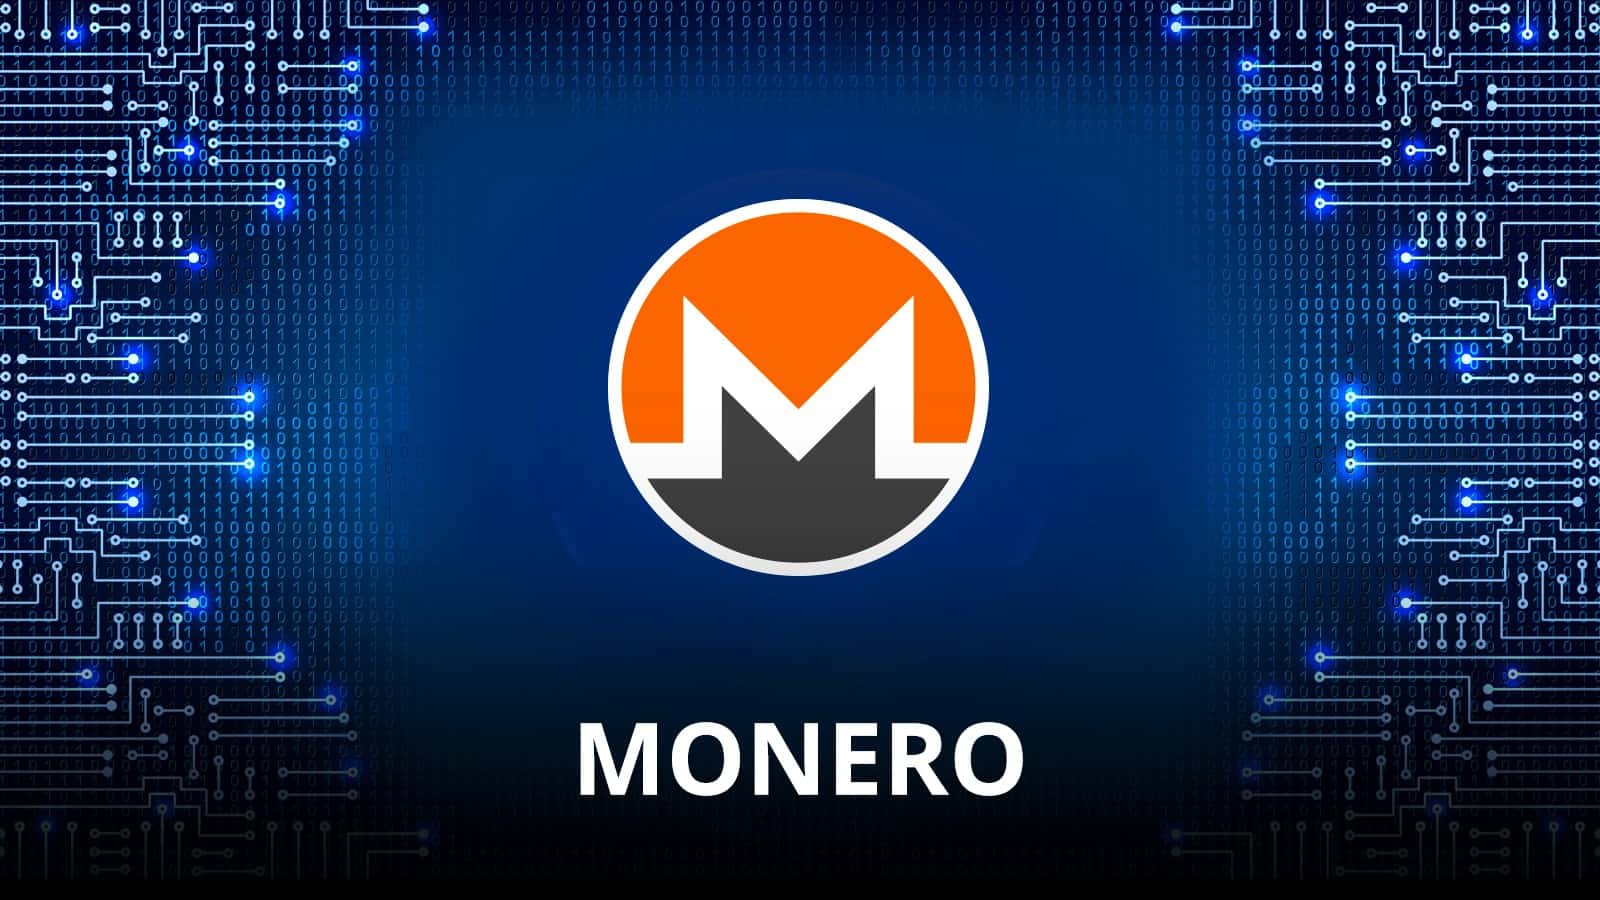 Monero Claims to Be Hit by an 'Incompetent Hacker'